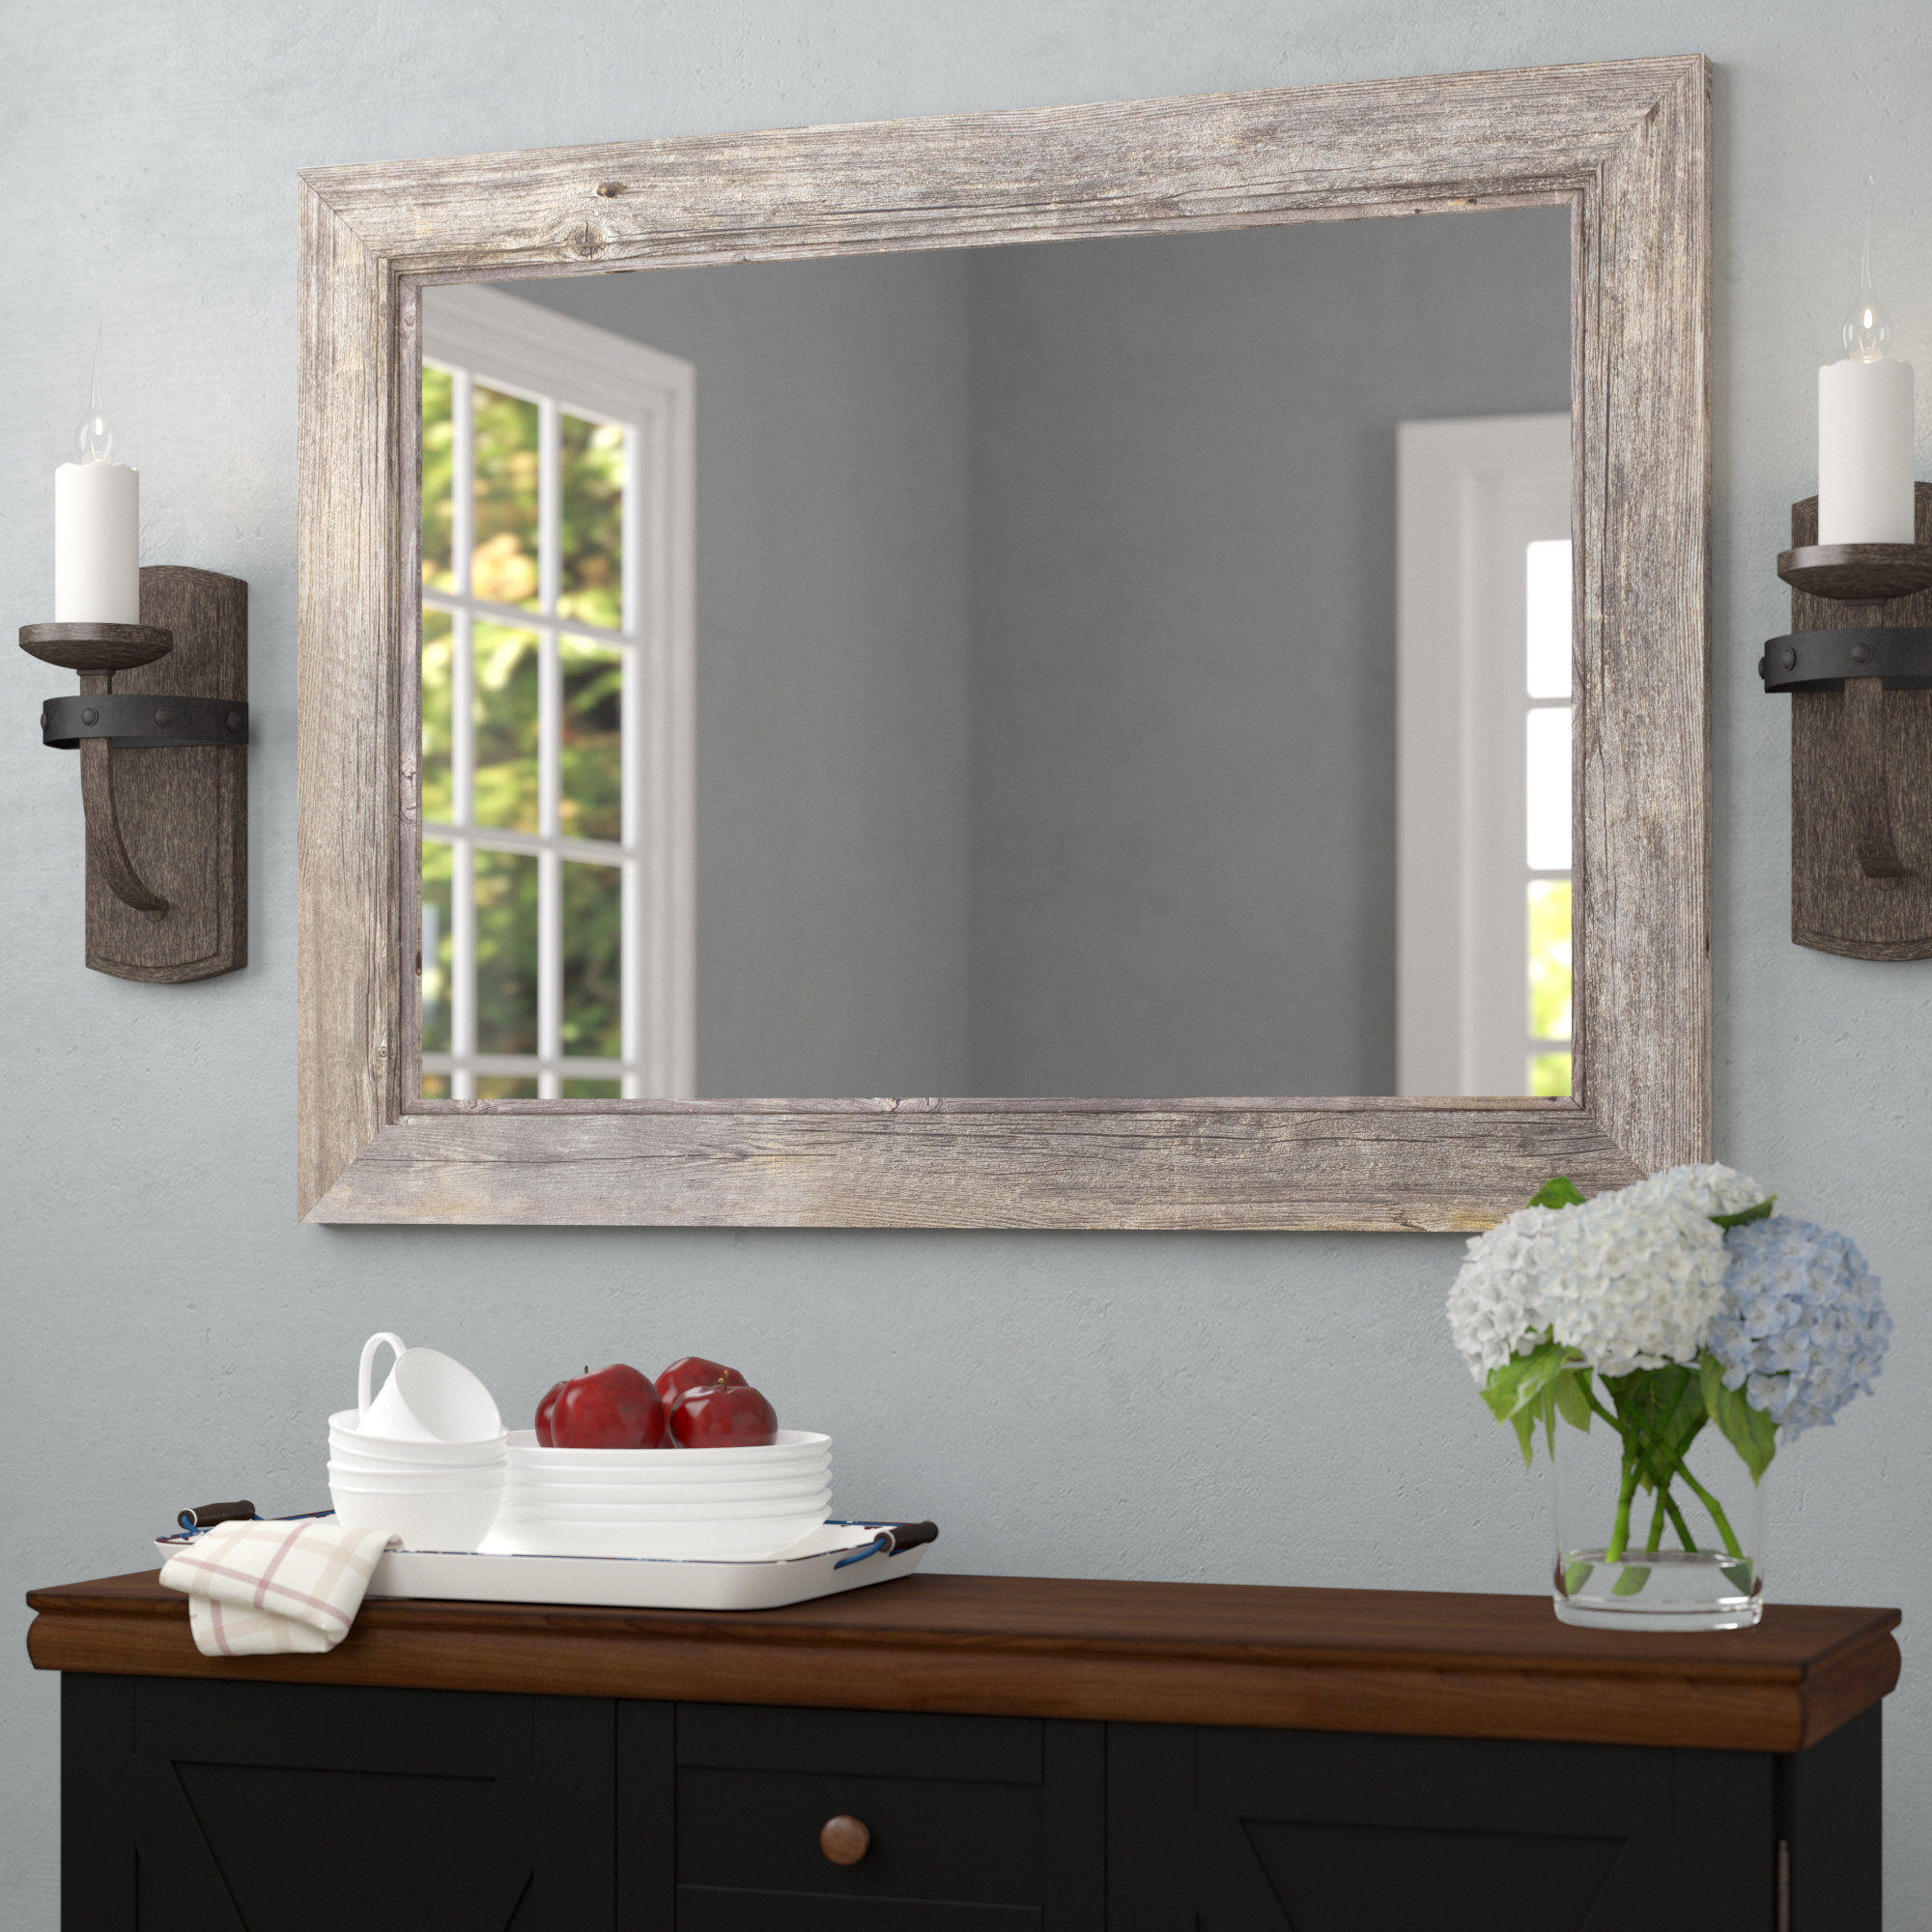 Fashionable Landover Rustic Distressed Bathroom/vanity Mirrors Throughout Traditional Beveled Accent Mirror (View 8 of 20)